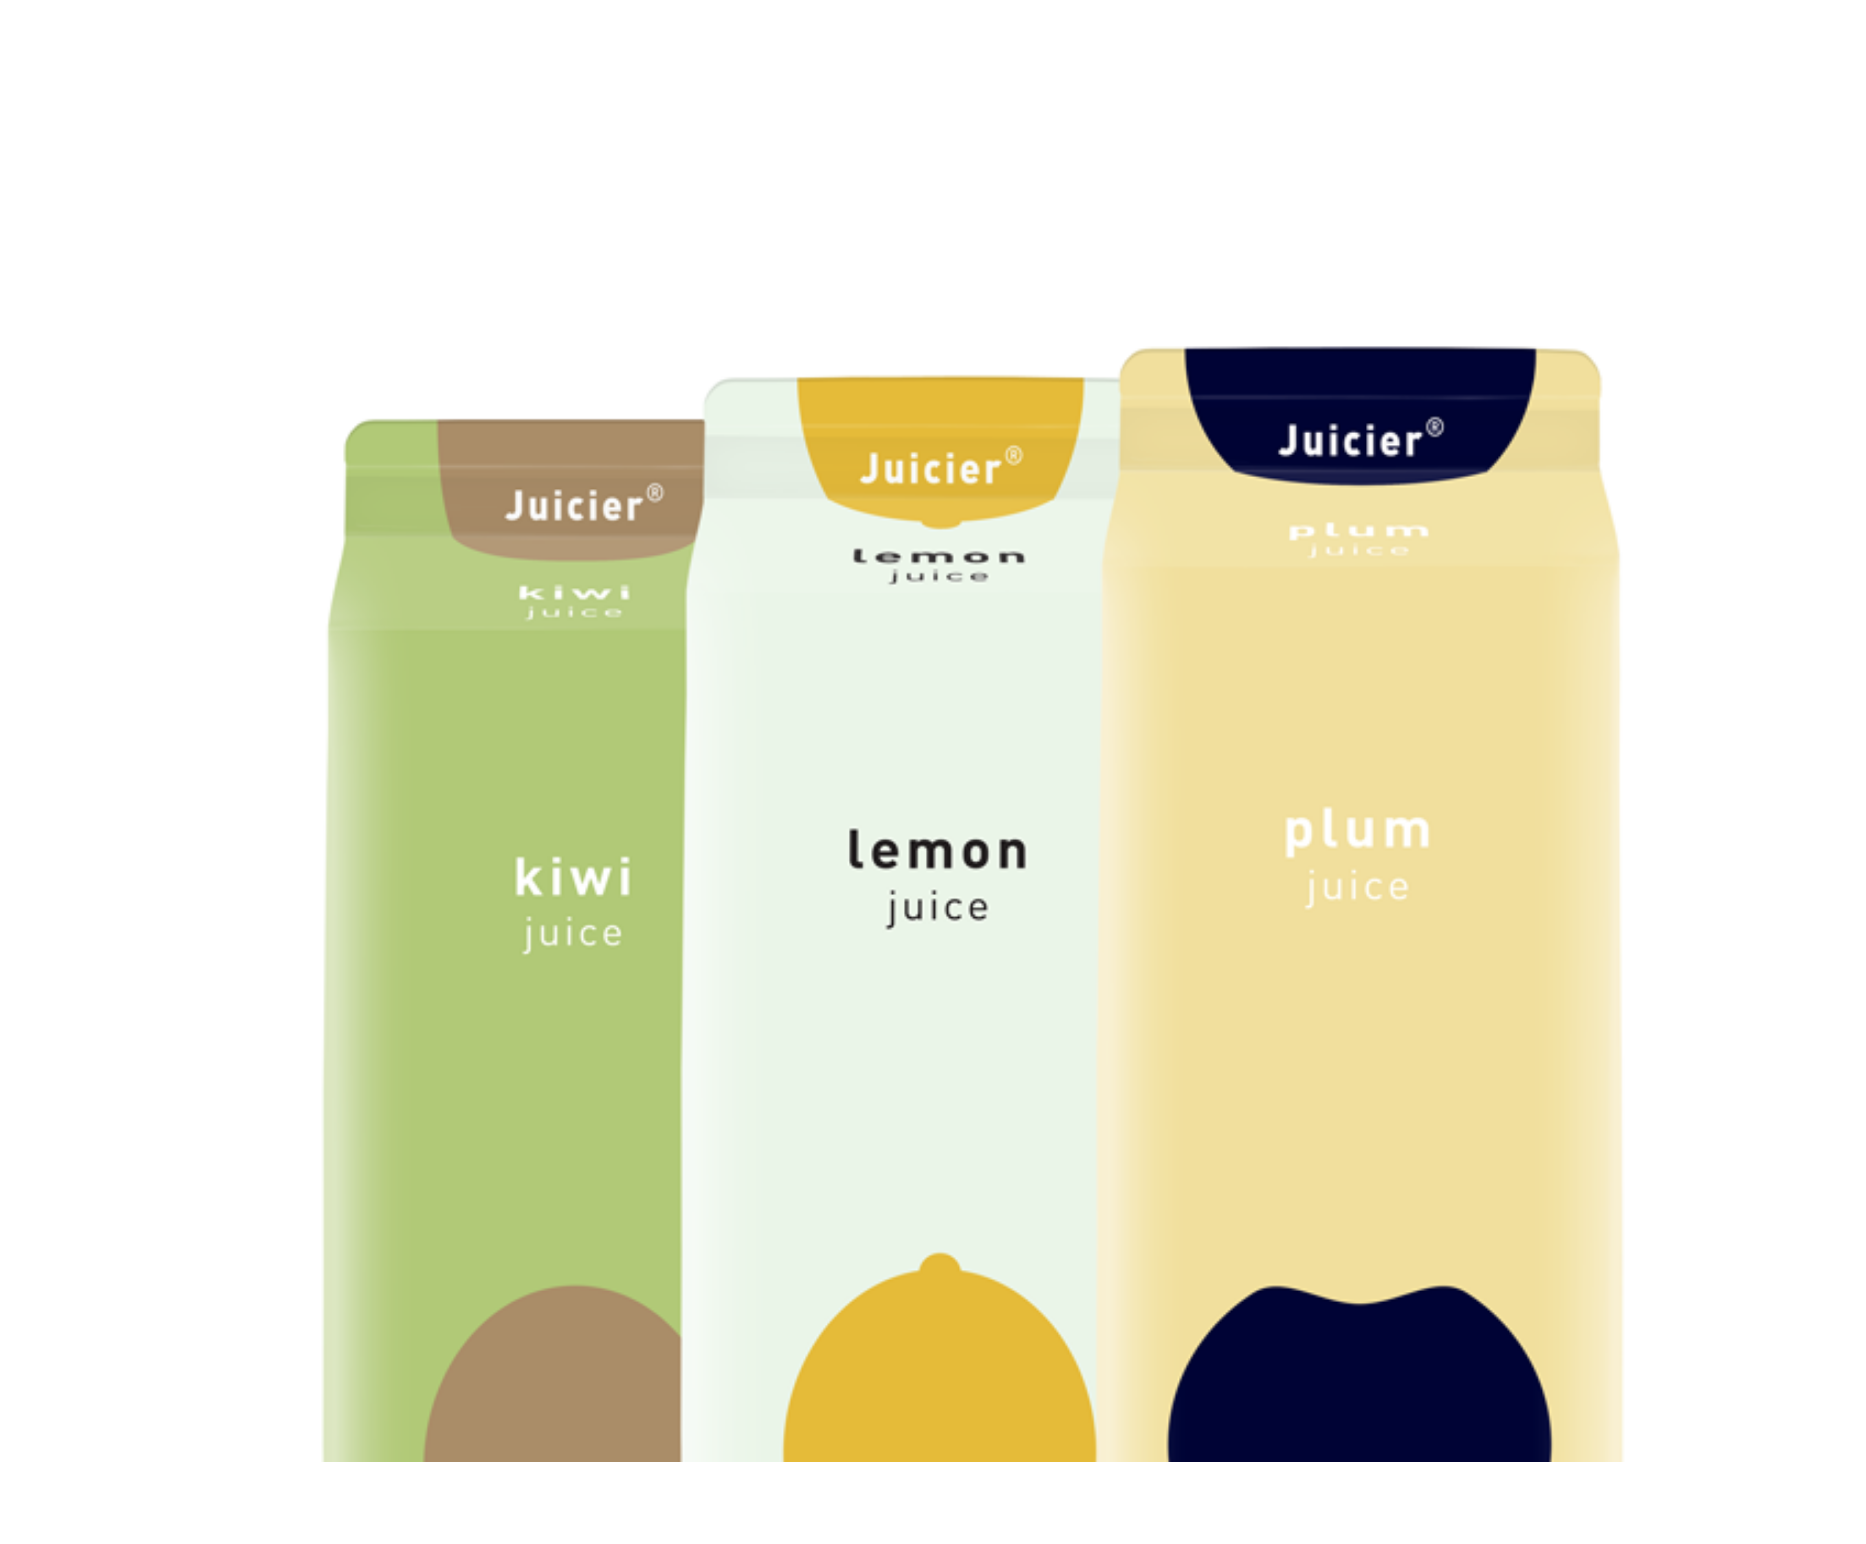 Juicier juice illustrations | Packaging